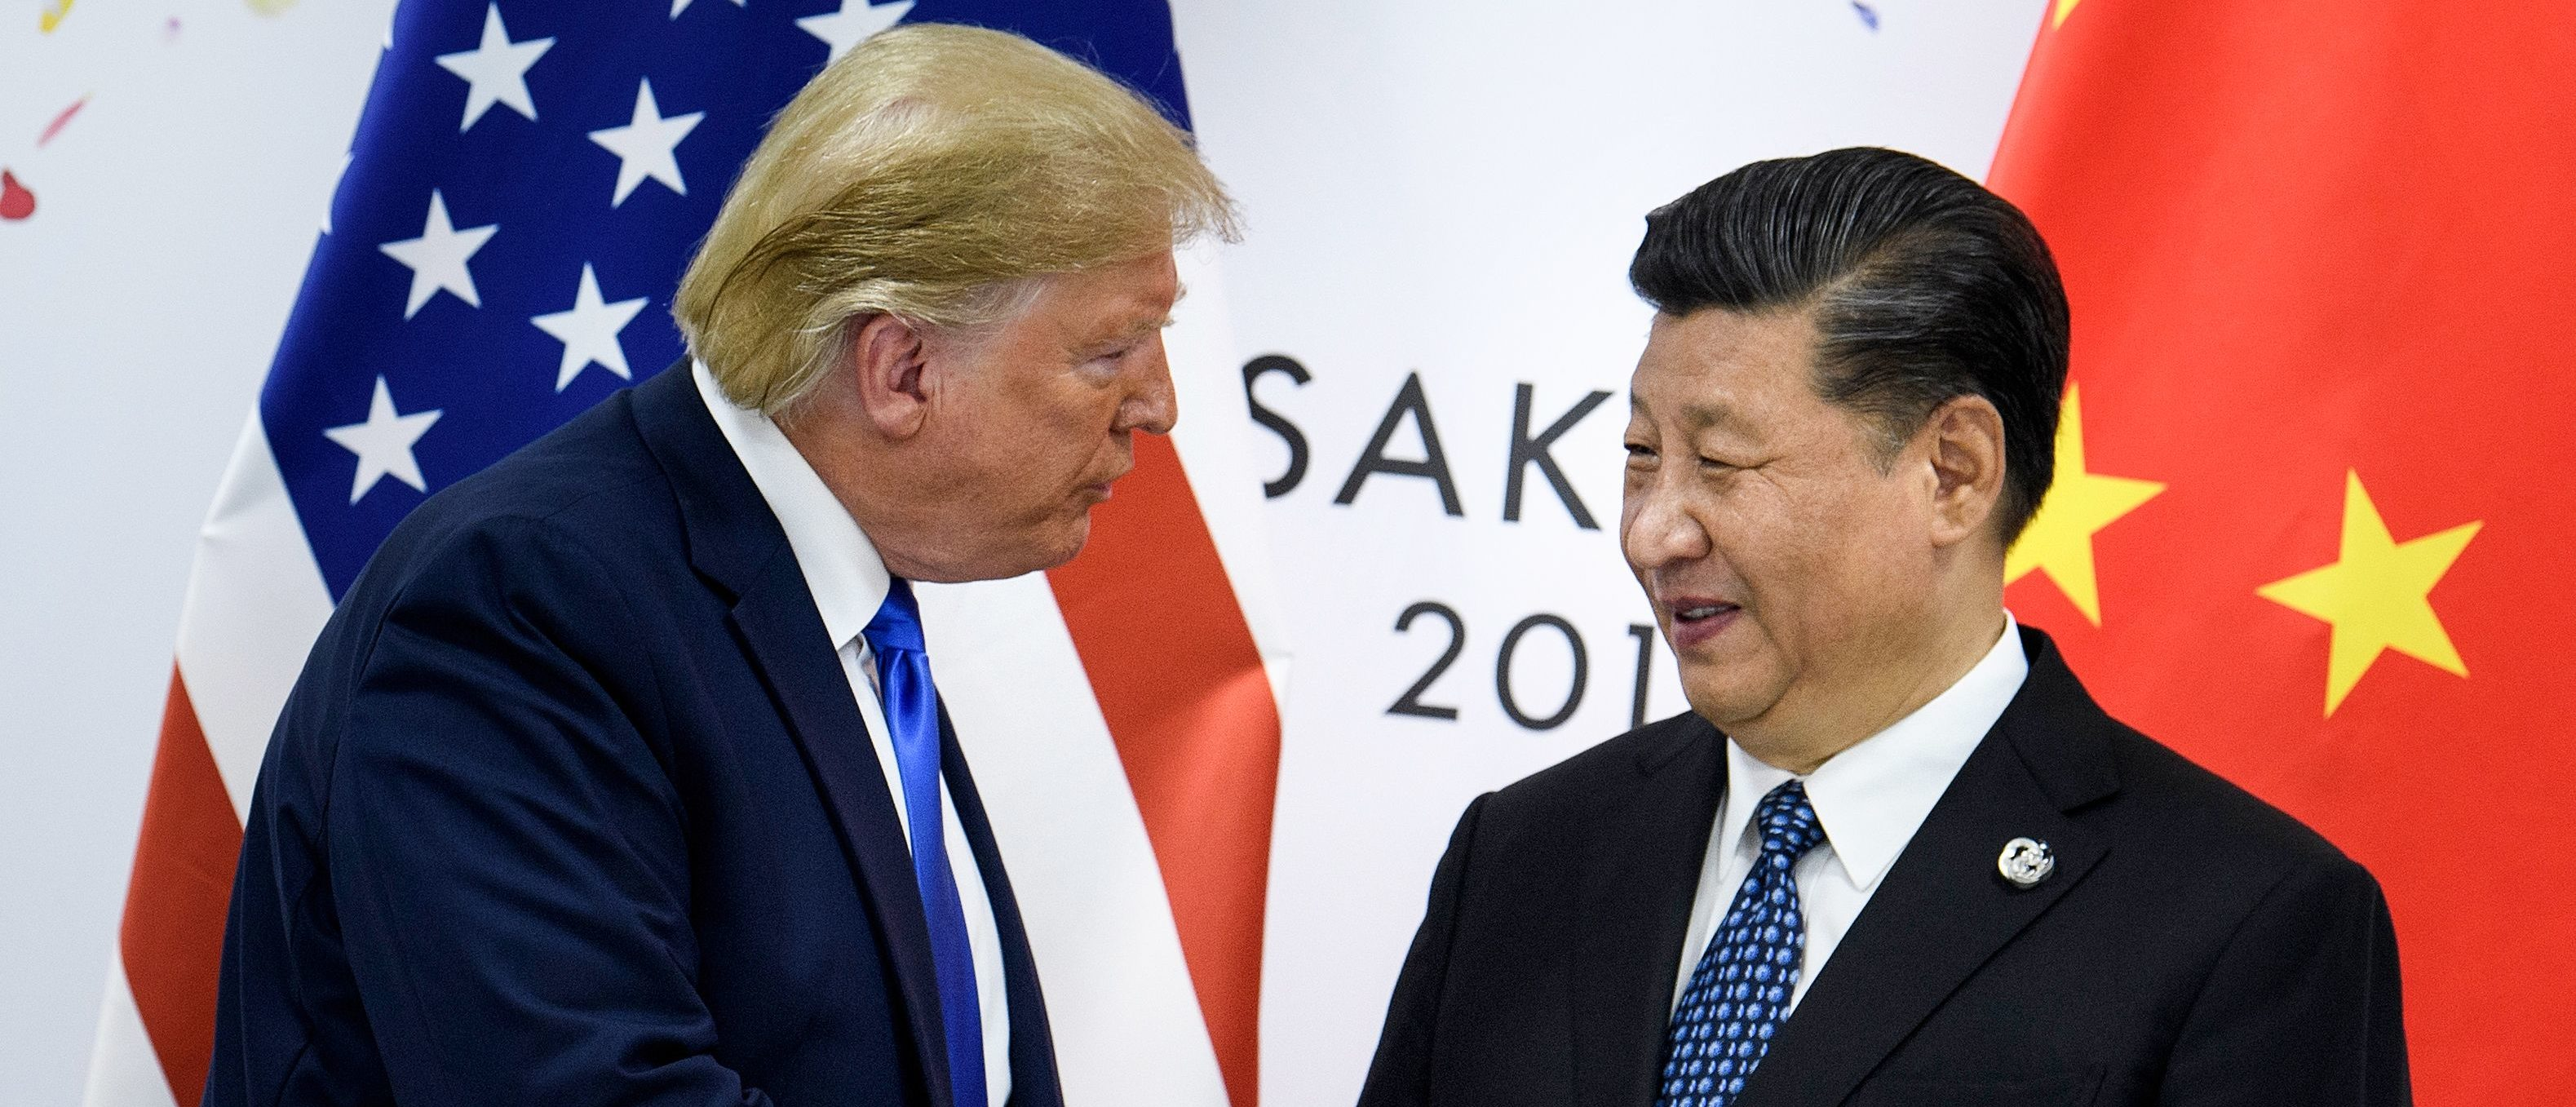 June 28, 2019 — China's President Xi Jinping (R) shakes hands with US President Donald Trump before a bilateral meeting on the sidelines of the G20 Summit in Osaka. - From the Arab Spring to bloodletting in Syria, from Obama to Trump, from terror in the streets of Paris to Brexit, the 2010s began with hope for a more equitable world, and end with a slide towards nationalistic populism. (Photo by BRENDAN SMIALOWSKI/AFP via Getty Images)